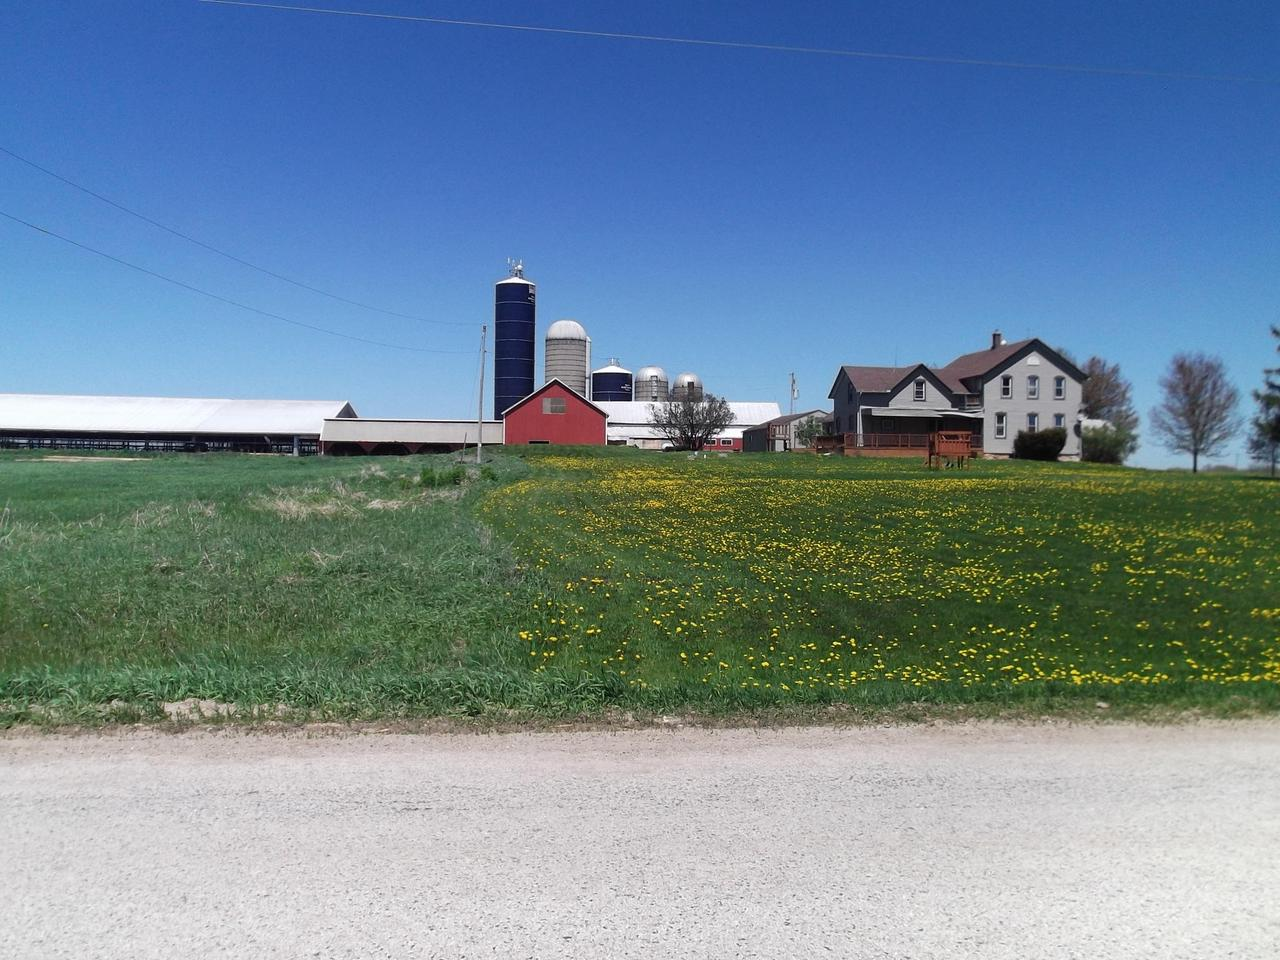 Large home with dairy operation included, just outside the village of Reedsville.Home features an inviting front porch,eat in country kitchen, formal dining room, living room, main floor laundry, 4 + bedrooms and attached 3 car garage.Farm includes 85 +/- acres, double 8 herring bone milking parlor, 5000 gallon milk tank, sand bedded free stall barn, 5 silos with unloaders, machine and storage sheds, a half million gallon storage lagoon and much more.  Farm has heifer raising facility and ability to house dry cows.                       Check with listing agent for purchasing options as farm could be sold without the house.  ''More pictures to follow''Included in sale are 3 partial tax parcels  011034013001.00/011034014000.00/011034015001.